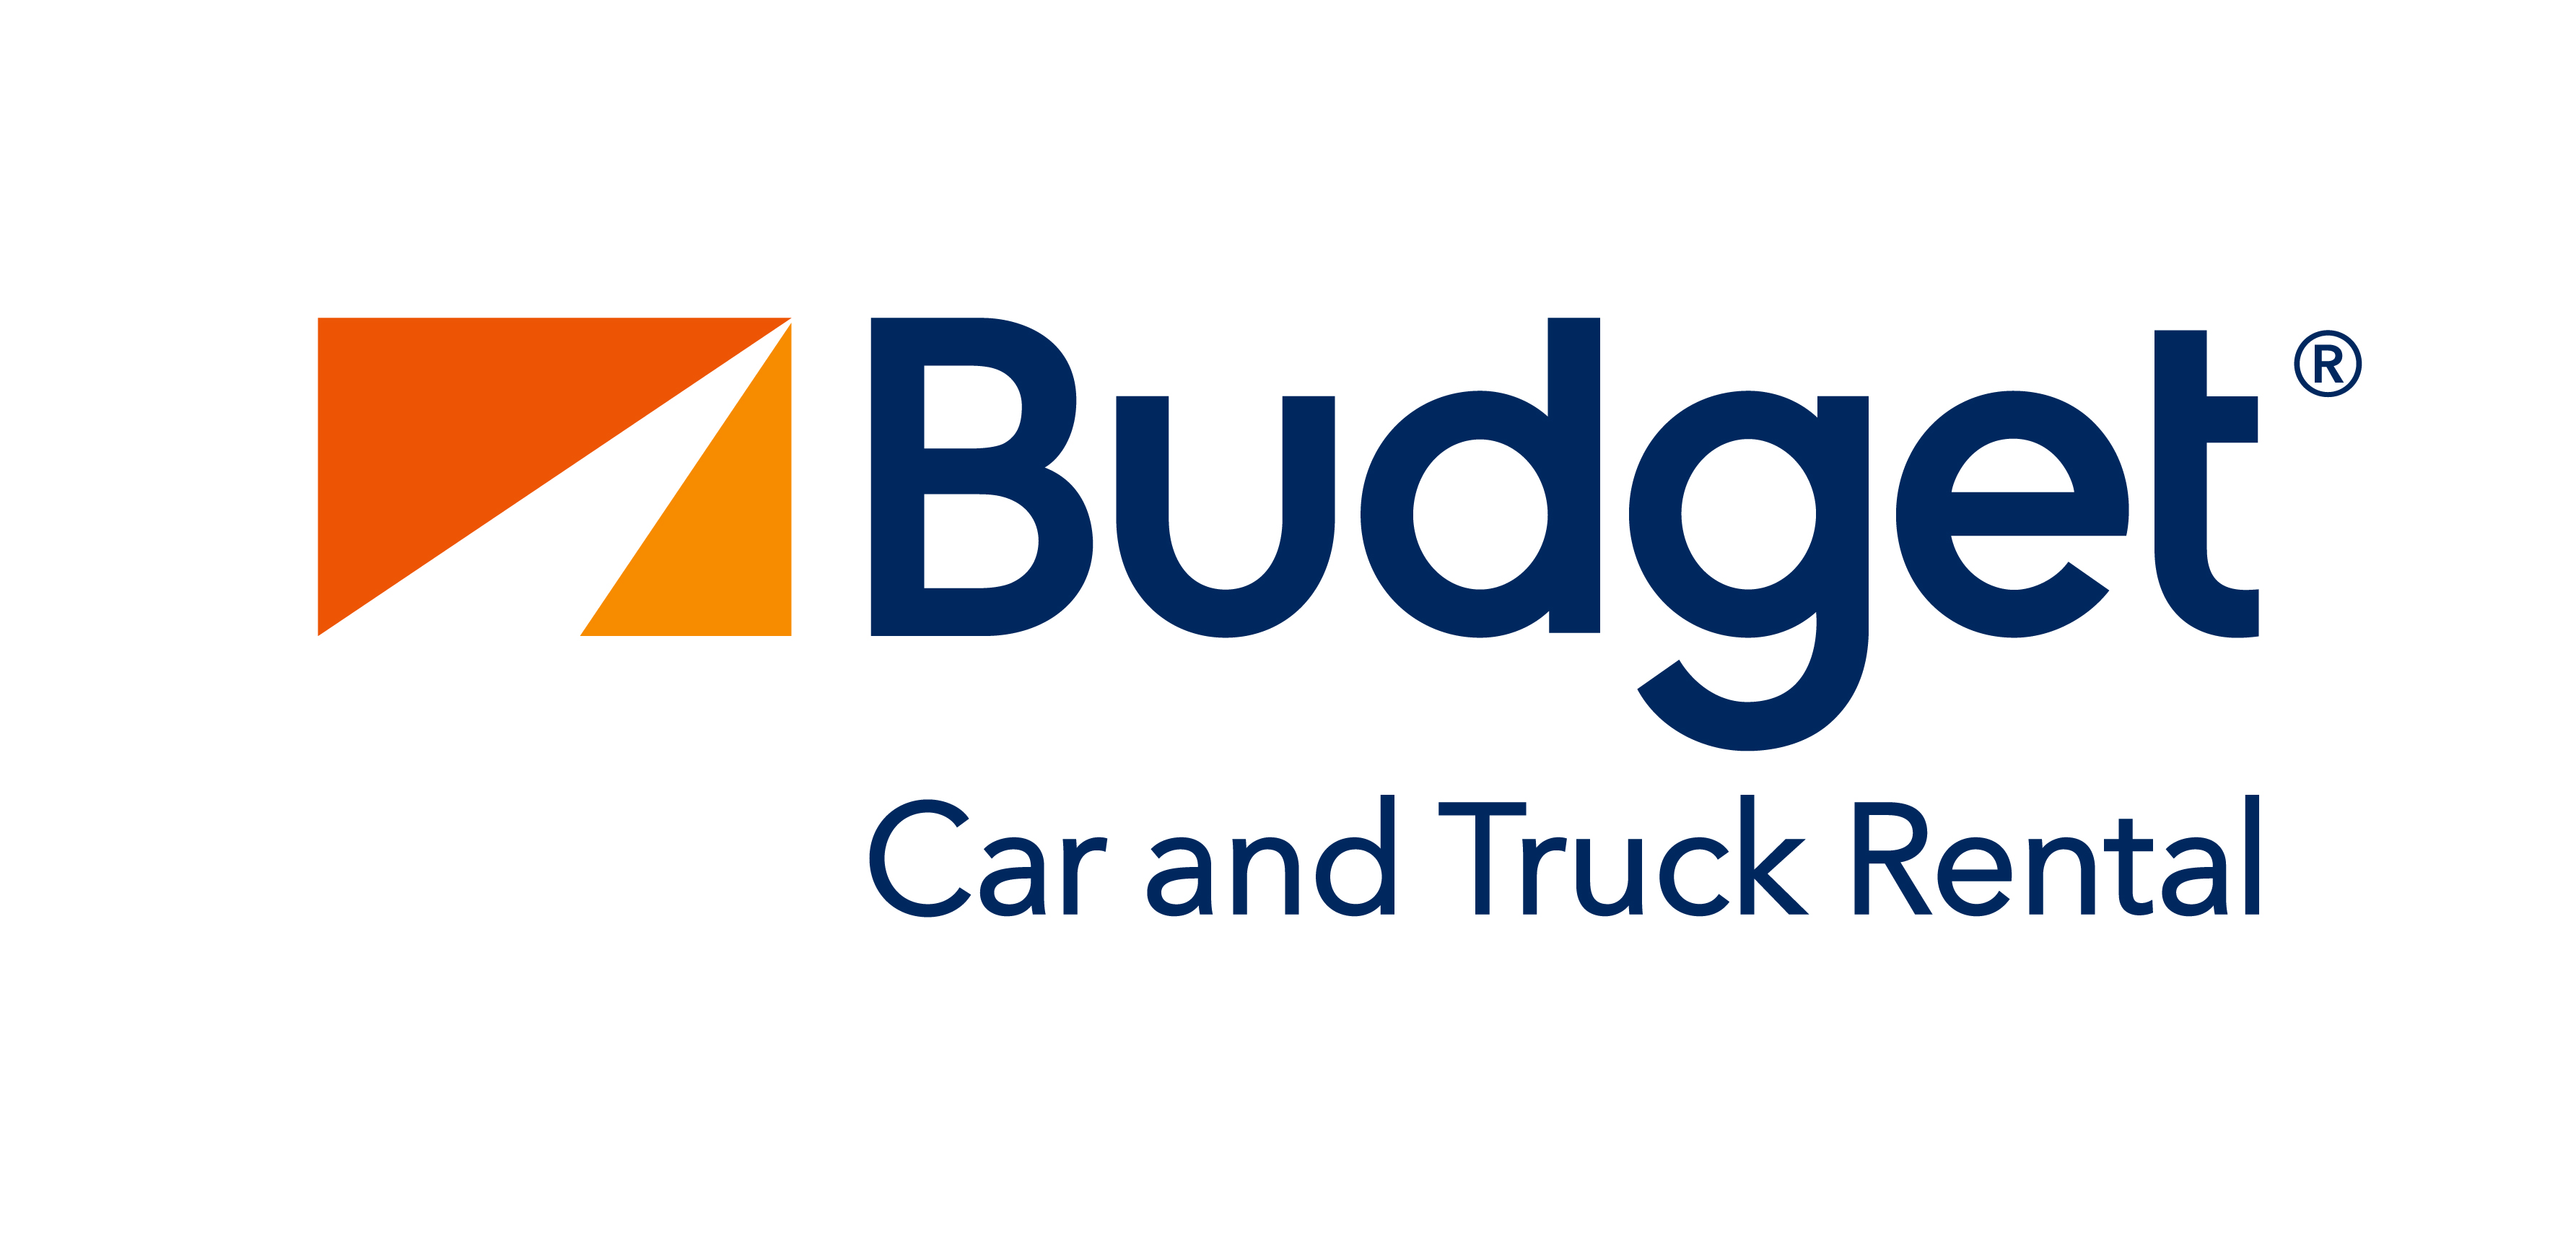 Car Rental Agency in VIC Warragul 3820 Budget Car & Truck Rental Warragul 161 Queen Street 0387818655